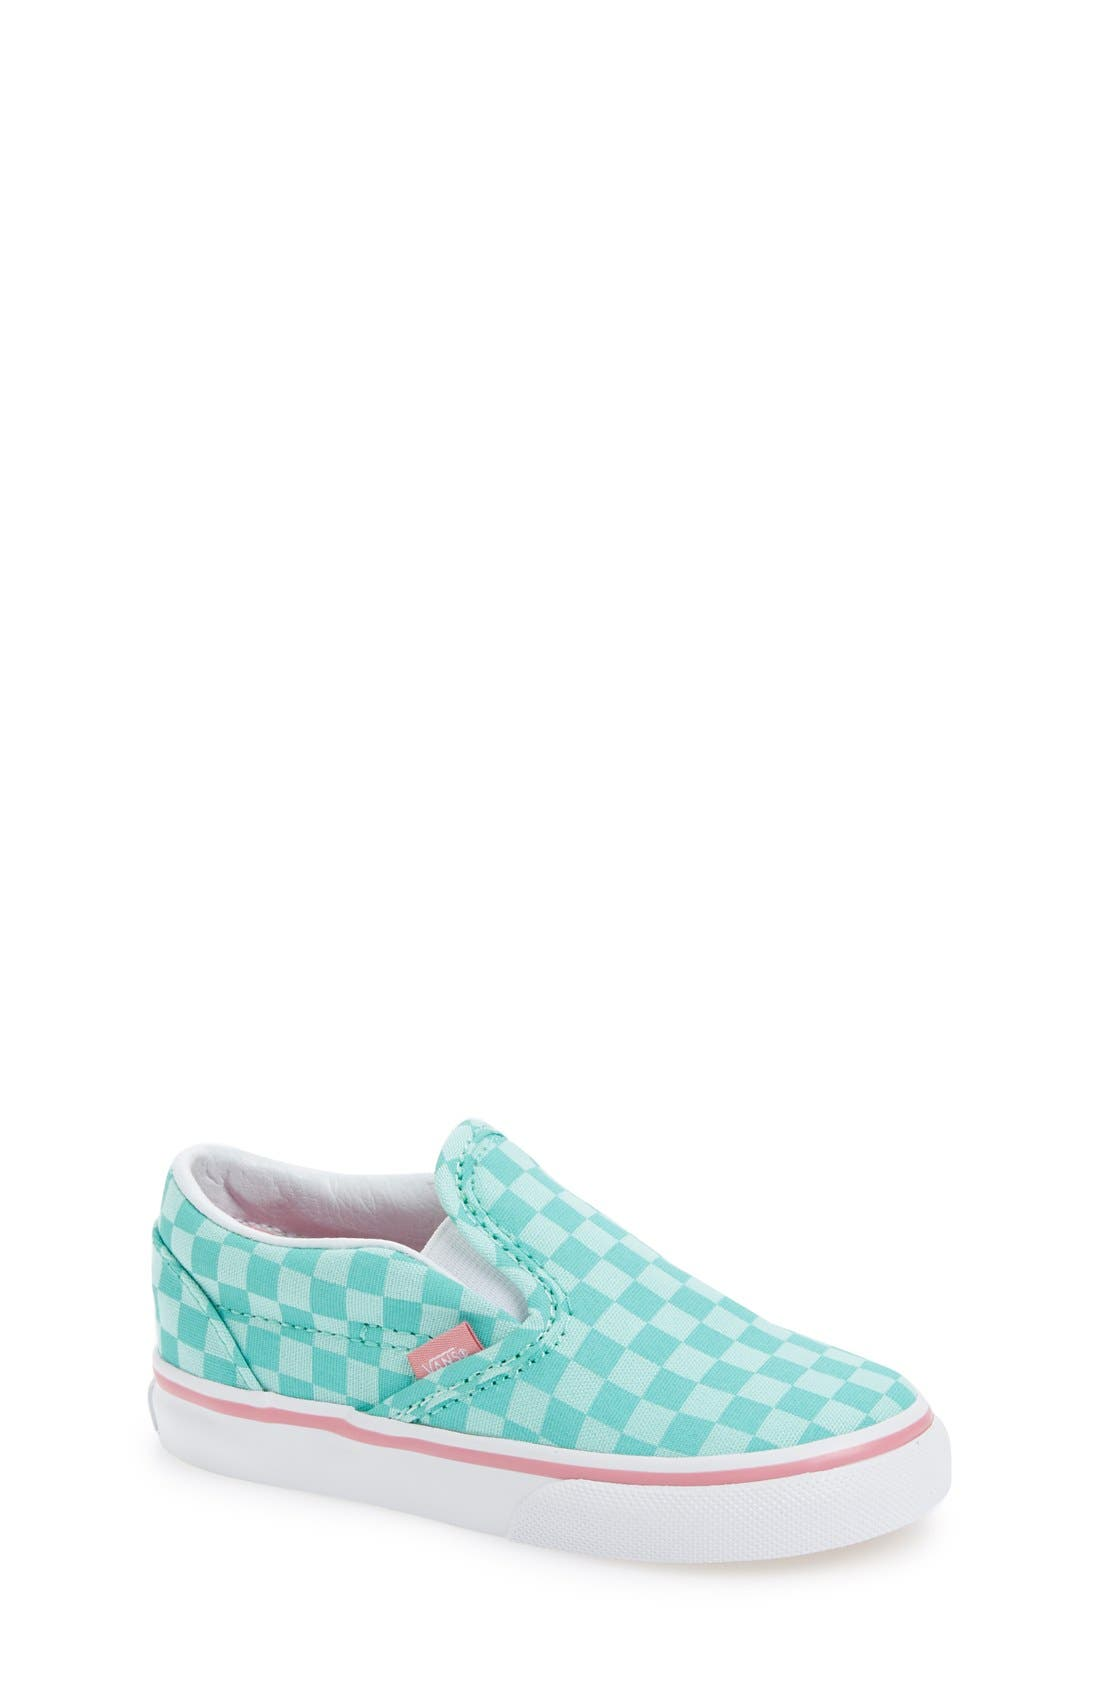 Classic Slip-On Sneaker,                         Main,                         color, 300